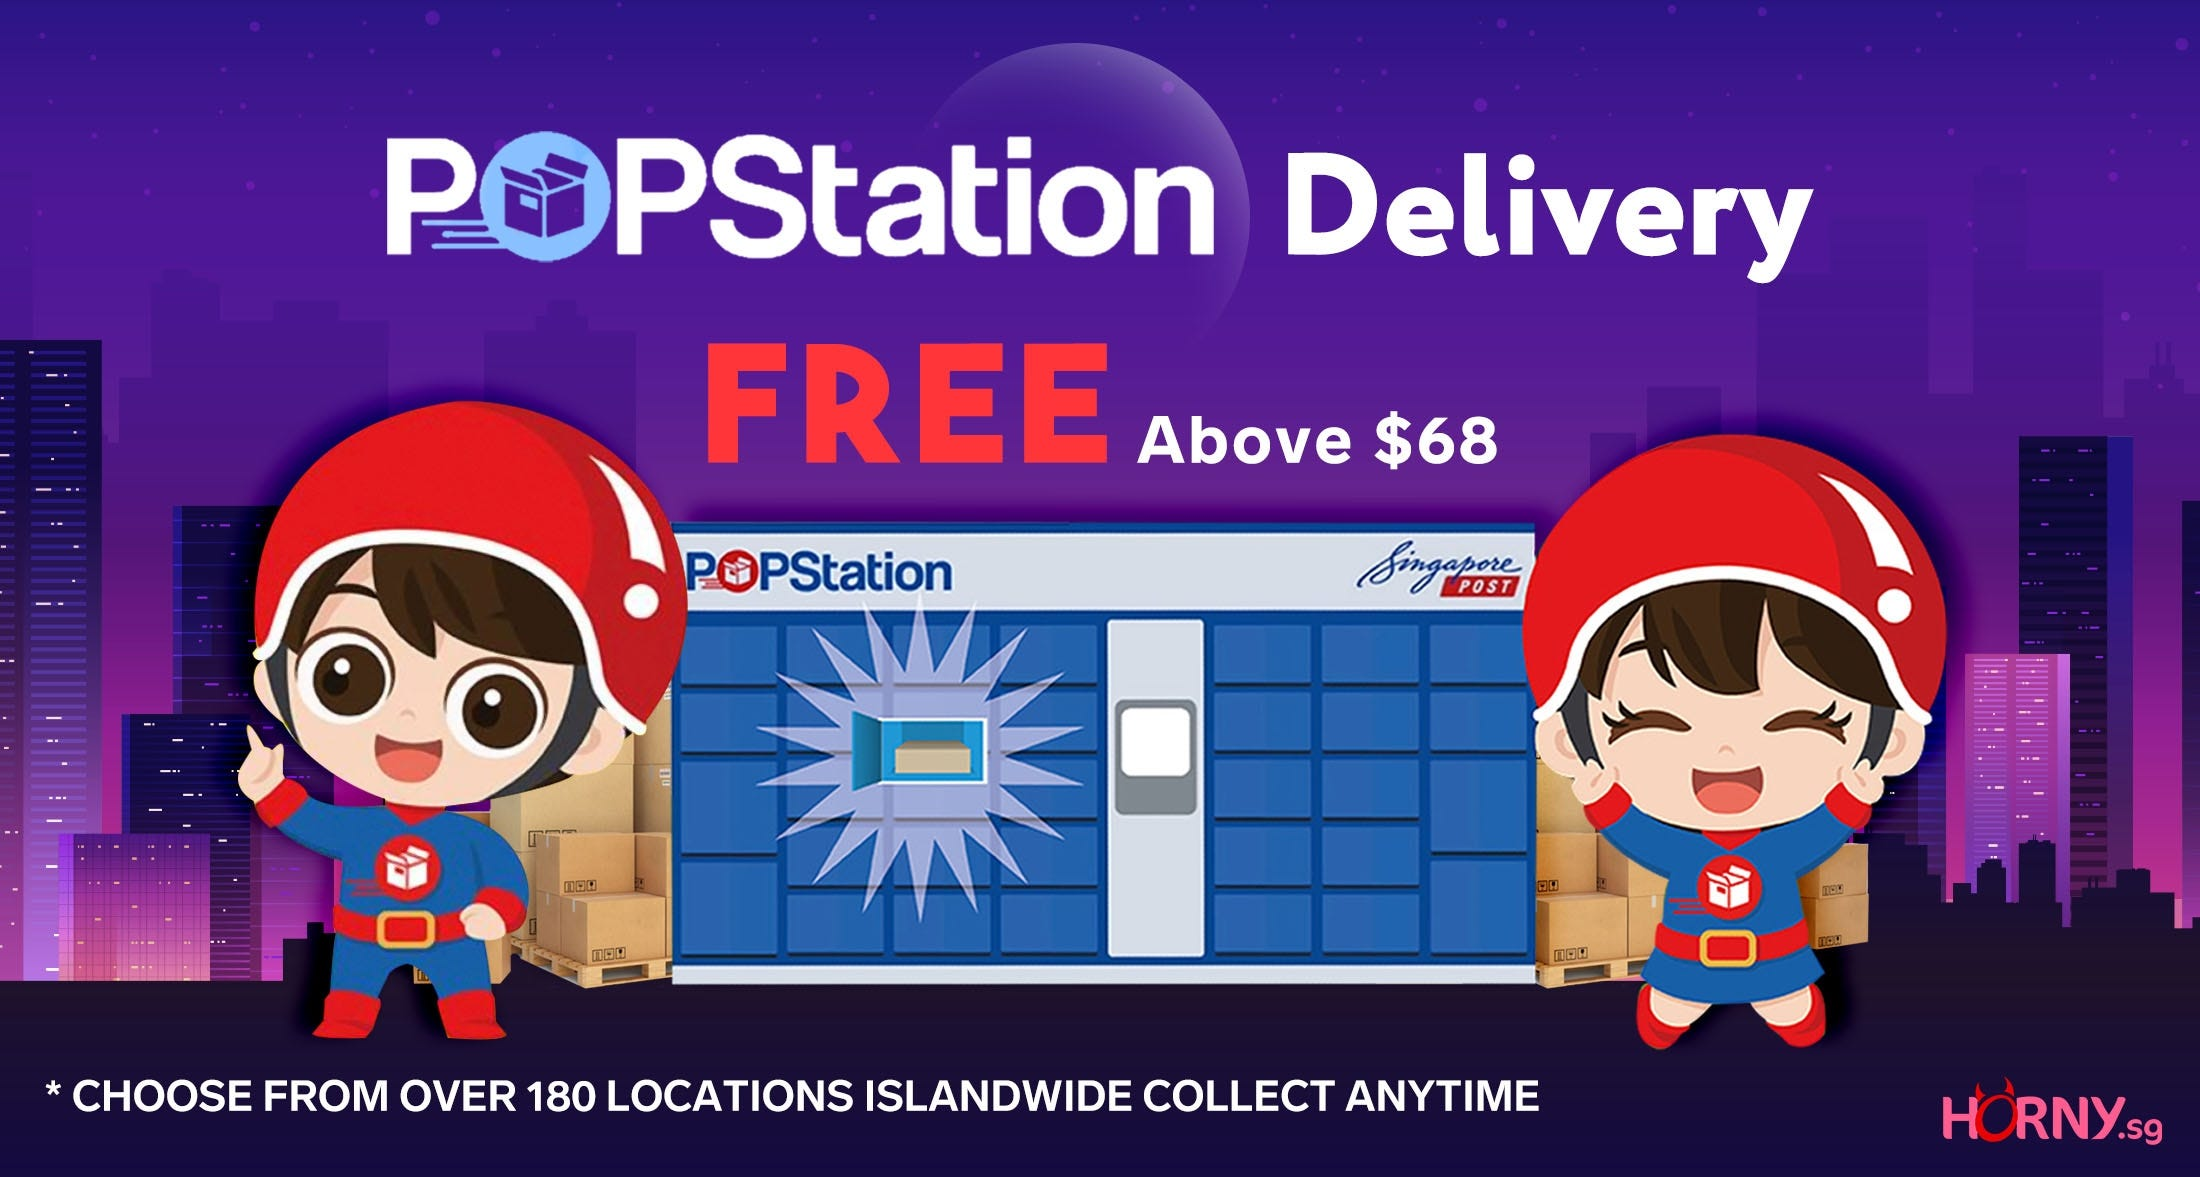 Popsattion free above $68